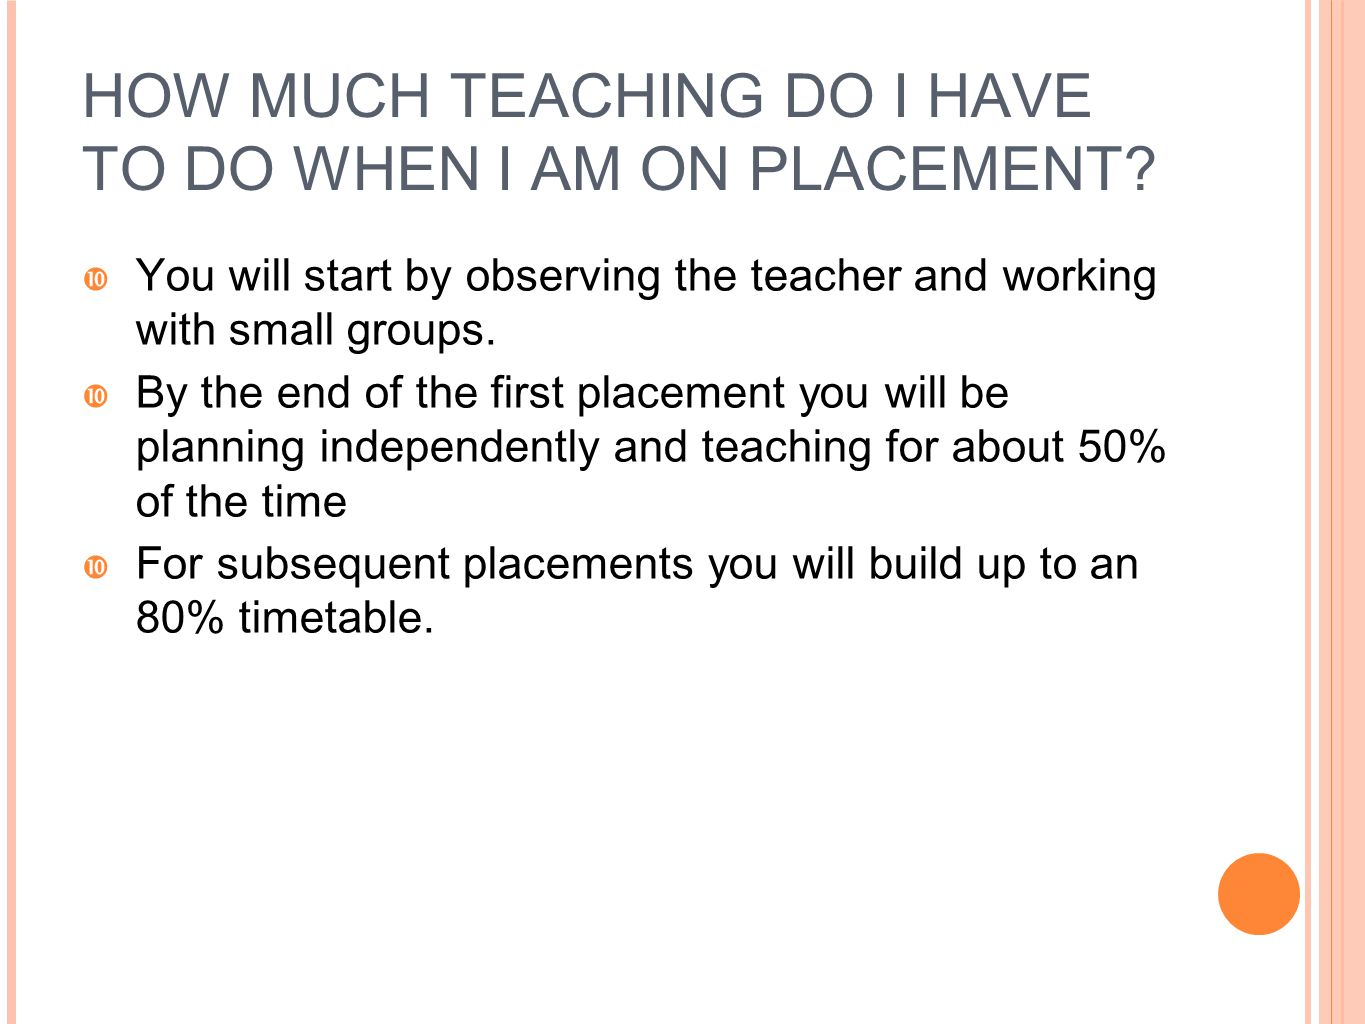 HOW MUCH TEACHING DO I HAVE TO DO WHEN I AM ON PLACEMENT